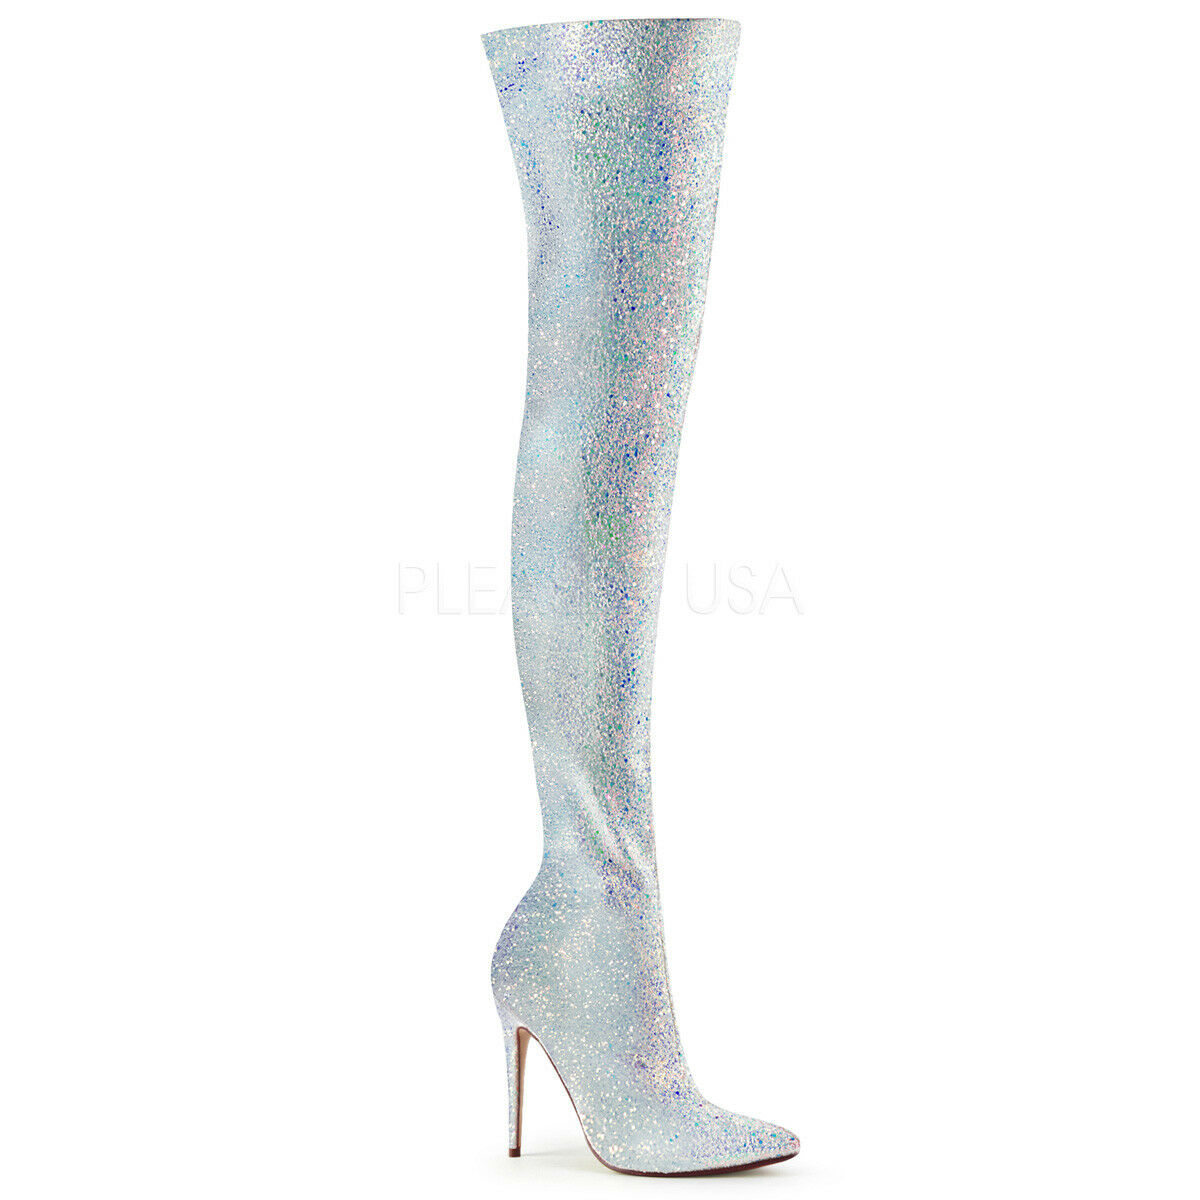 PLEASER COURTLY 3015 THIGH HIGH GLITTER BOOTS BOOTS BOOTS 5